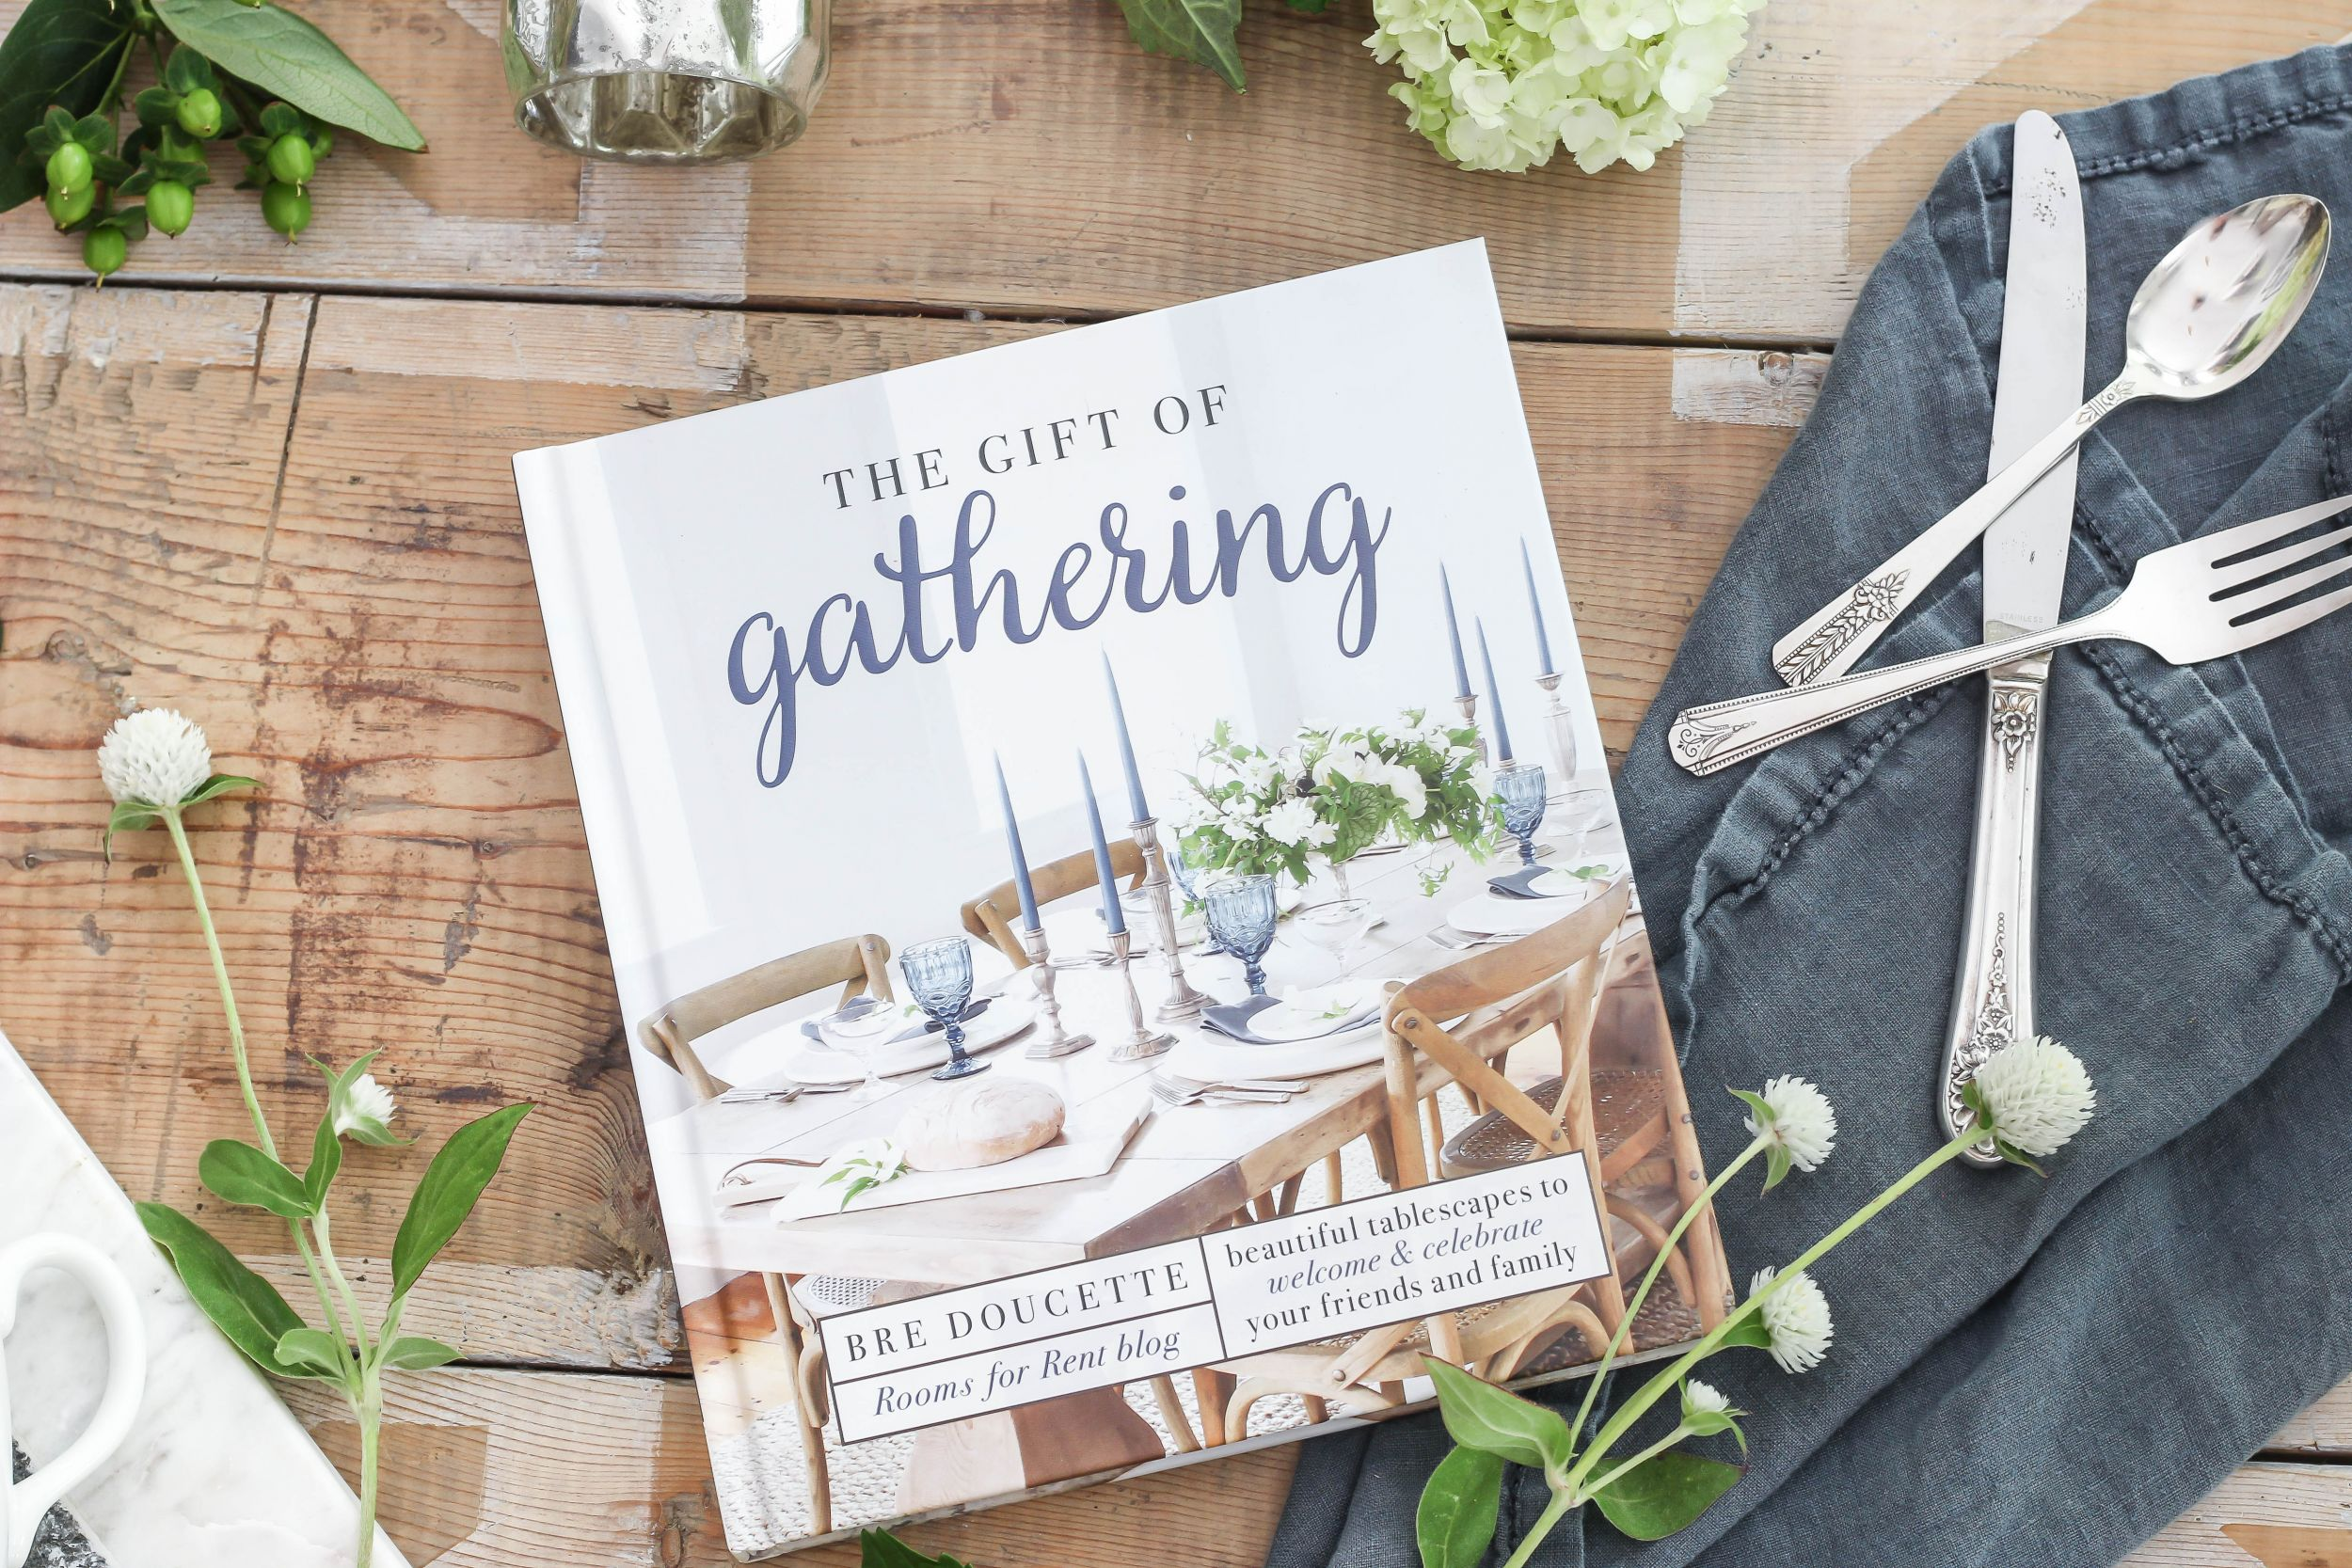 The Gift of Gathering + a Giveaway